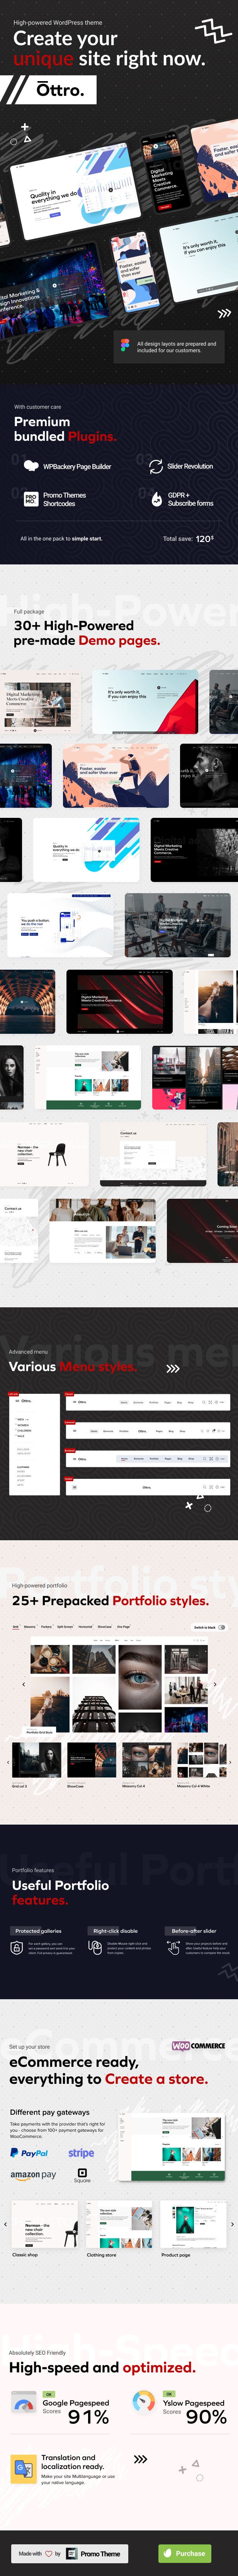 Ottro - Contemporary MultiPurpose WordPress Theme - 1